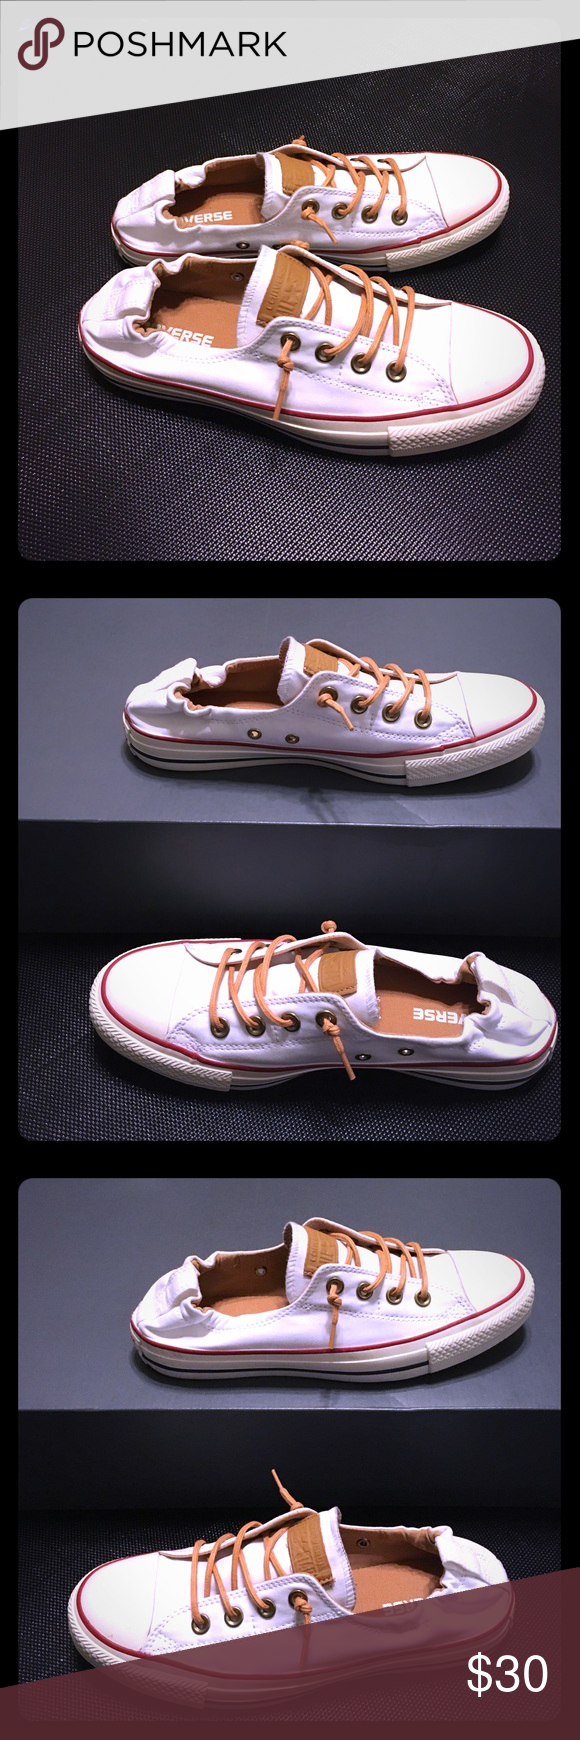 8c7ac83faf44 Converse Shoreline Sneakers Their full name is  Converse Chuck Taylor All  Star Peached Shoreline Low